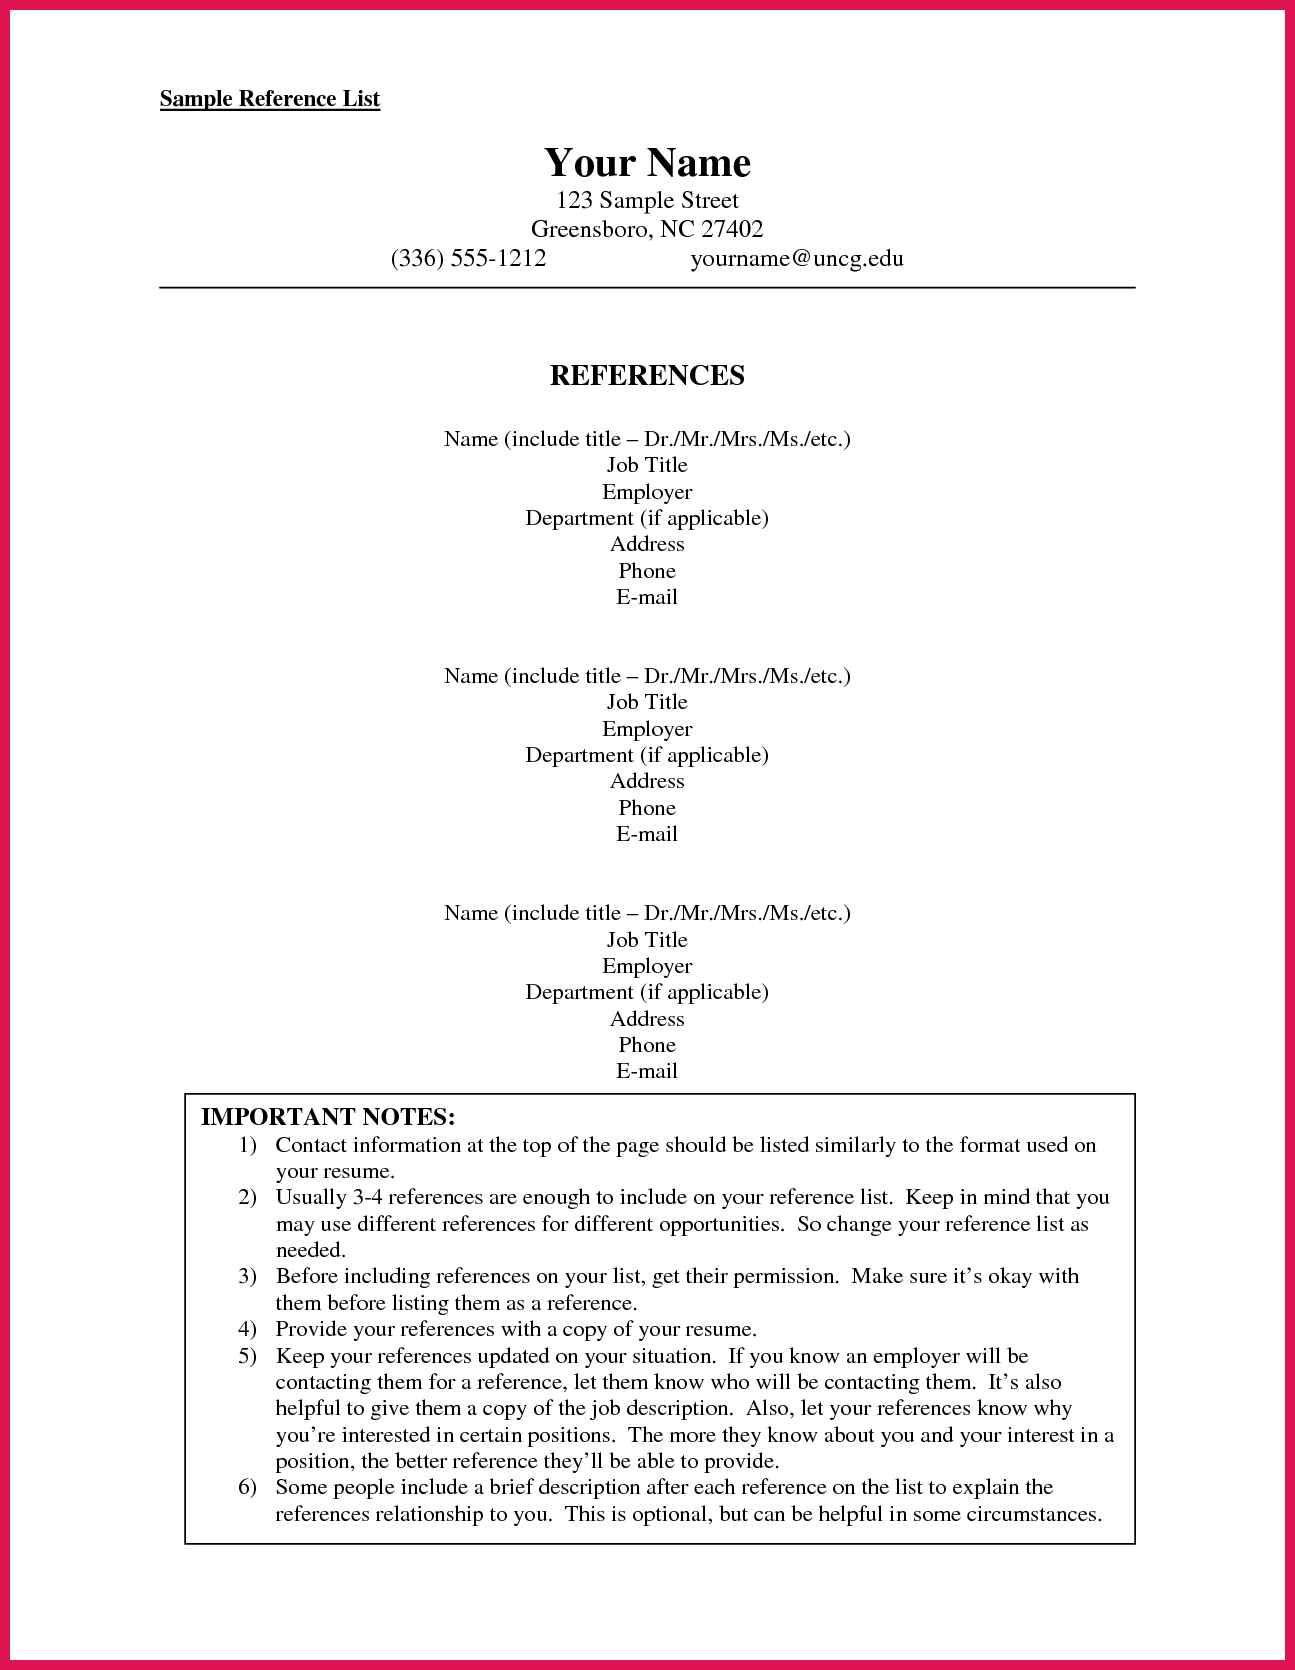 how to format a reference list sop examples Resume